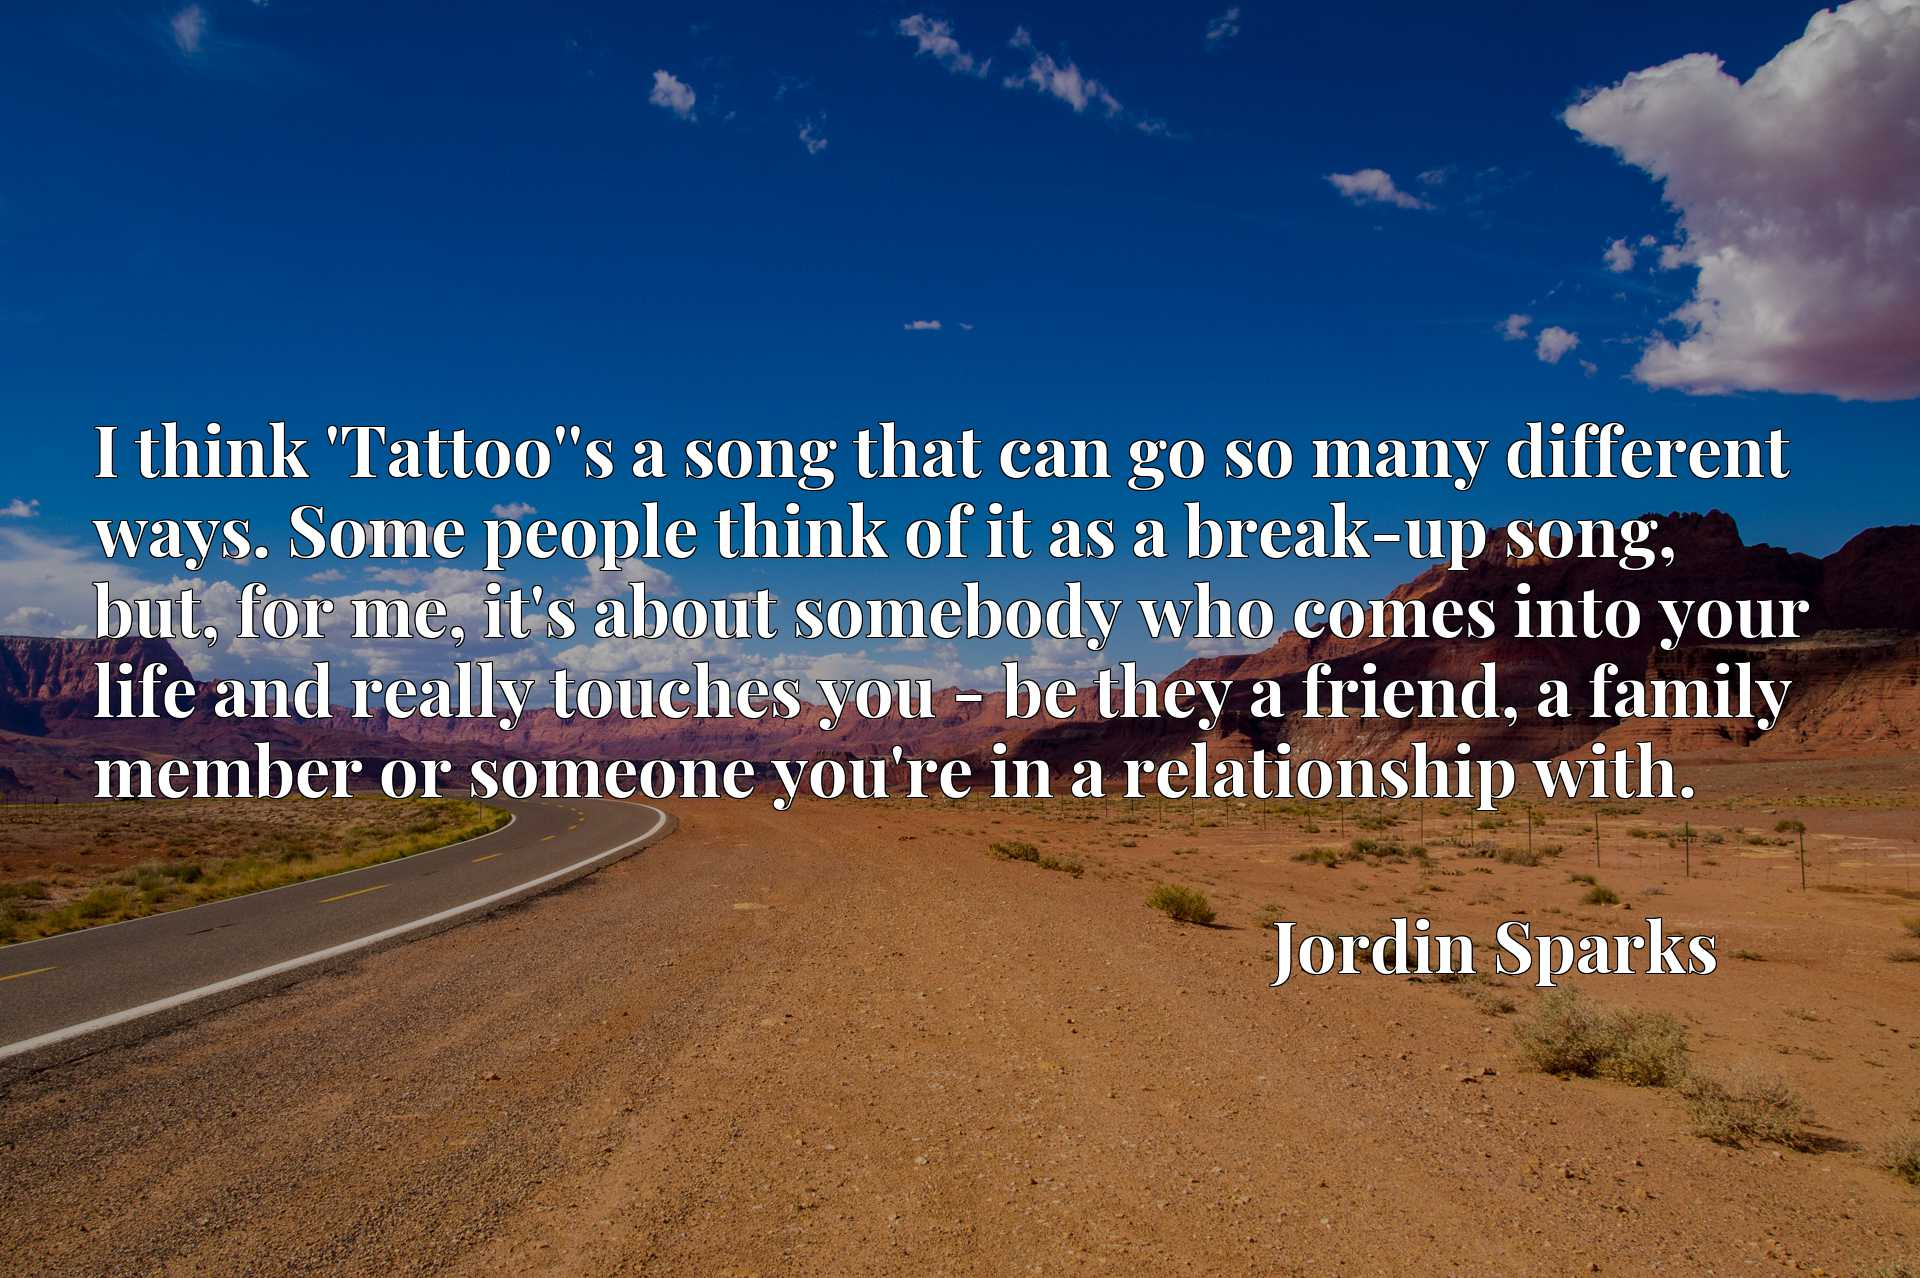 I think 'Tattoo''s a song that can go so many different ways. Some people think of it as a break-up song, but, for me, it's about somebody who comes into your life and really touches you - be they a friend, a family member or someone you're in a relationship with.